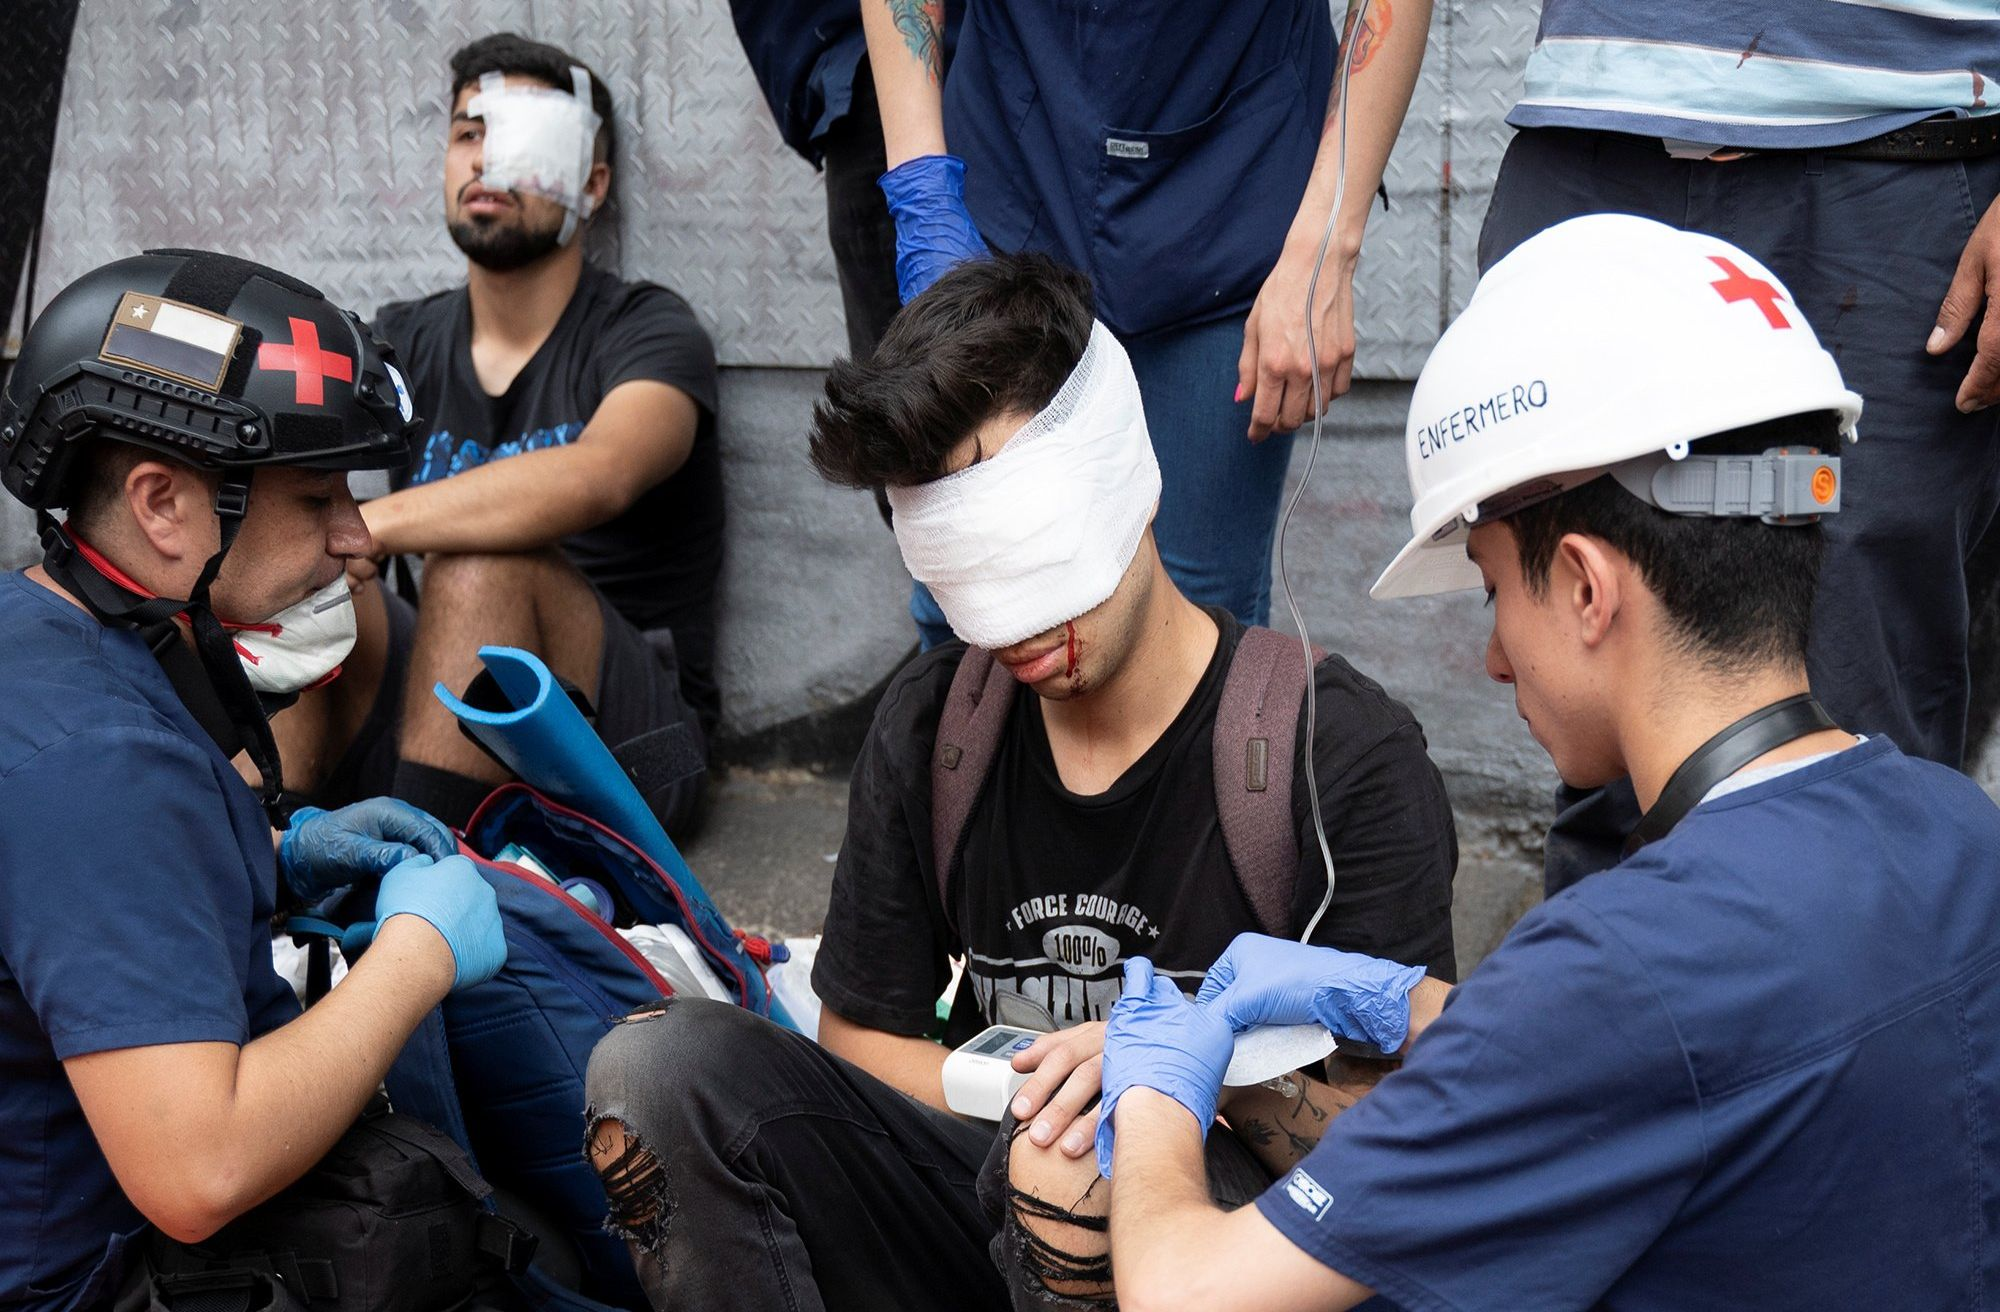 Chilean student Gustavo Gatica receive first aid care after being shot in the face by Chilean police with rubber bullets during a protests in Santiago, Chile November 8, 2019. Picture taken November 8, 2019. REUTERS/Osvaldo Pereira NO RESALES NO ARCHIVE